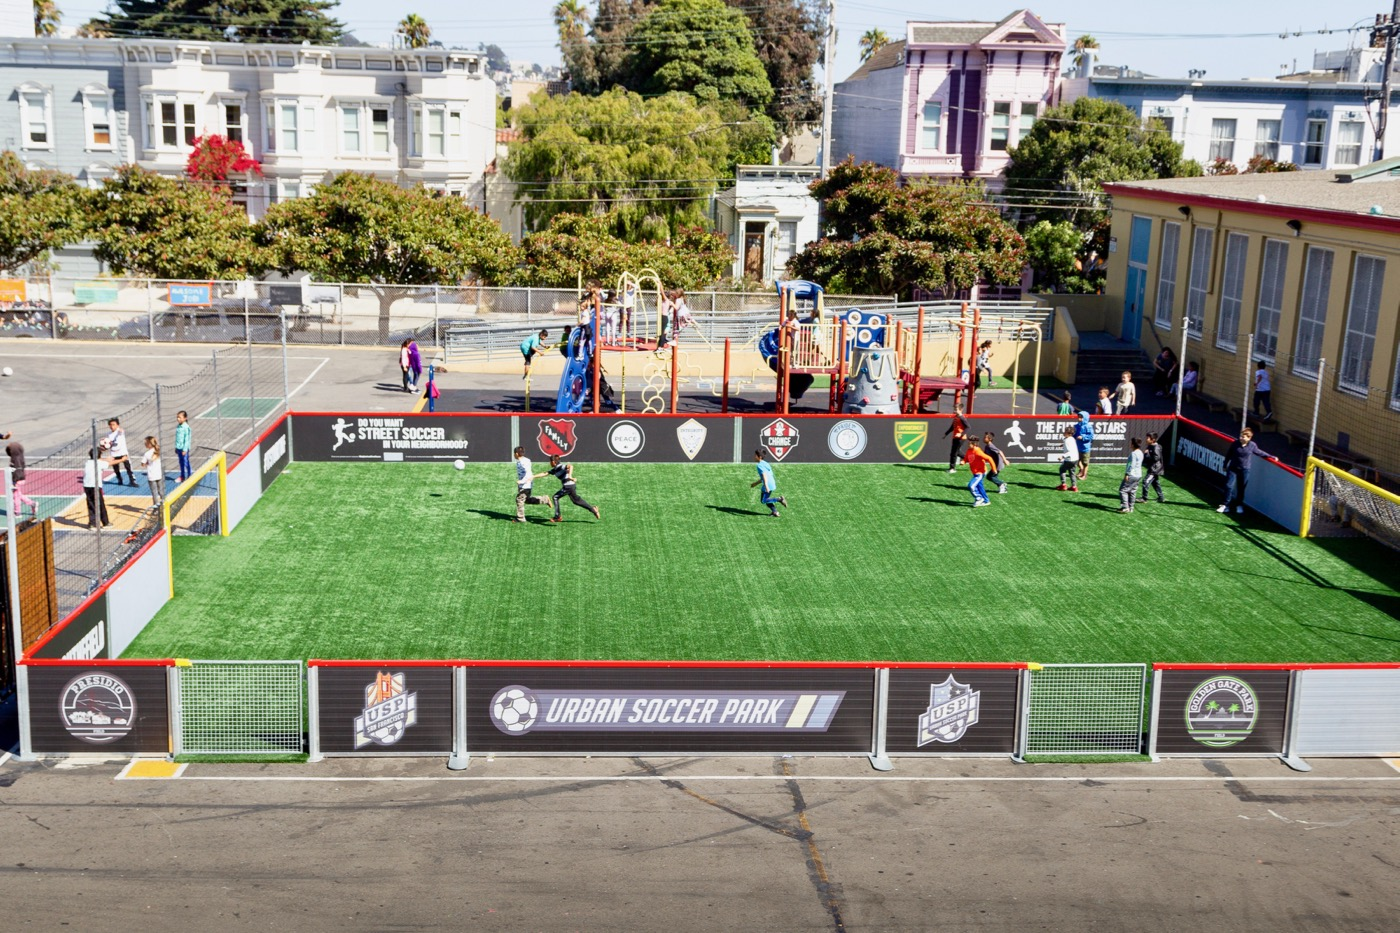 a mini pitch built in a school ground in san francisco with kids playing on it